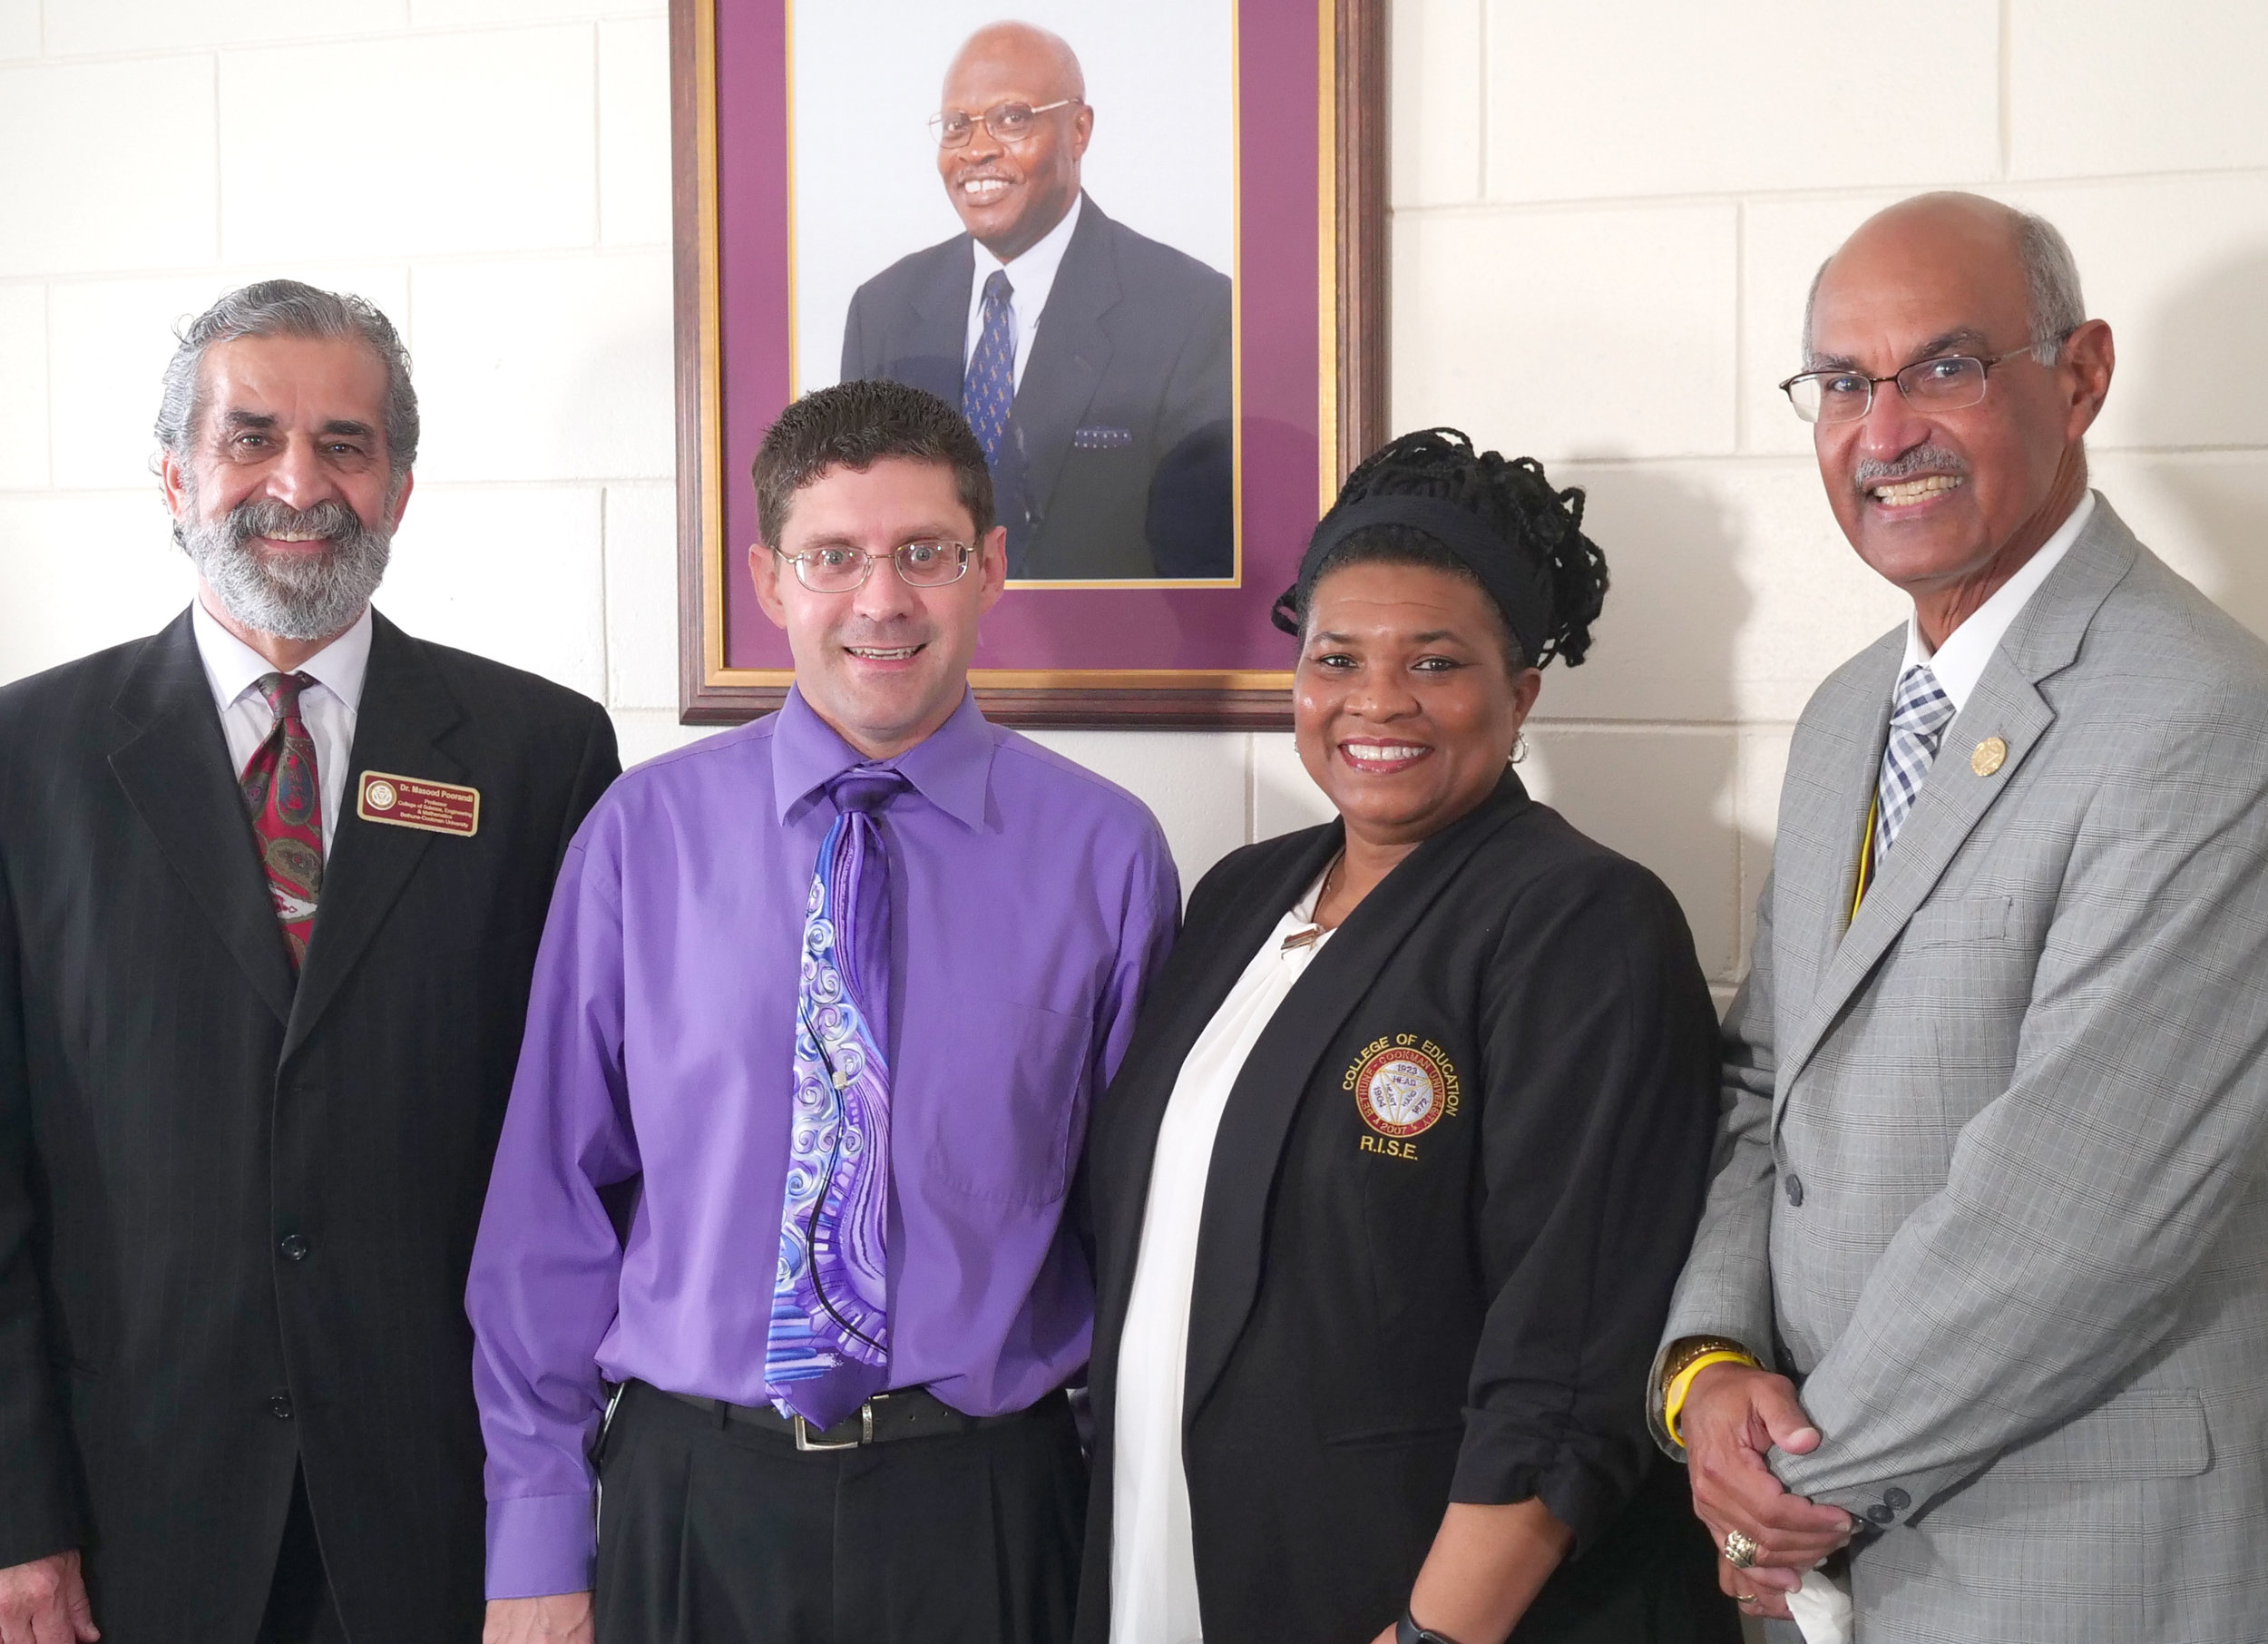 Pictured from left to right: Dr. Masood Poorandi, Dr. Allen Pelley, Ms. Lawana Walden, and Dr. Hector N. Torres